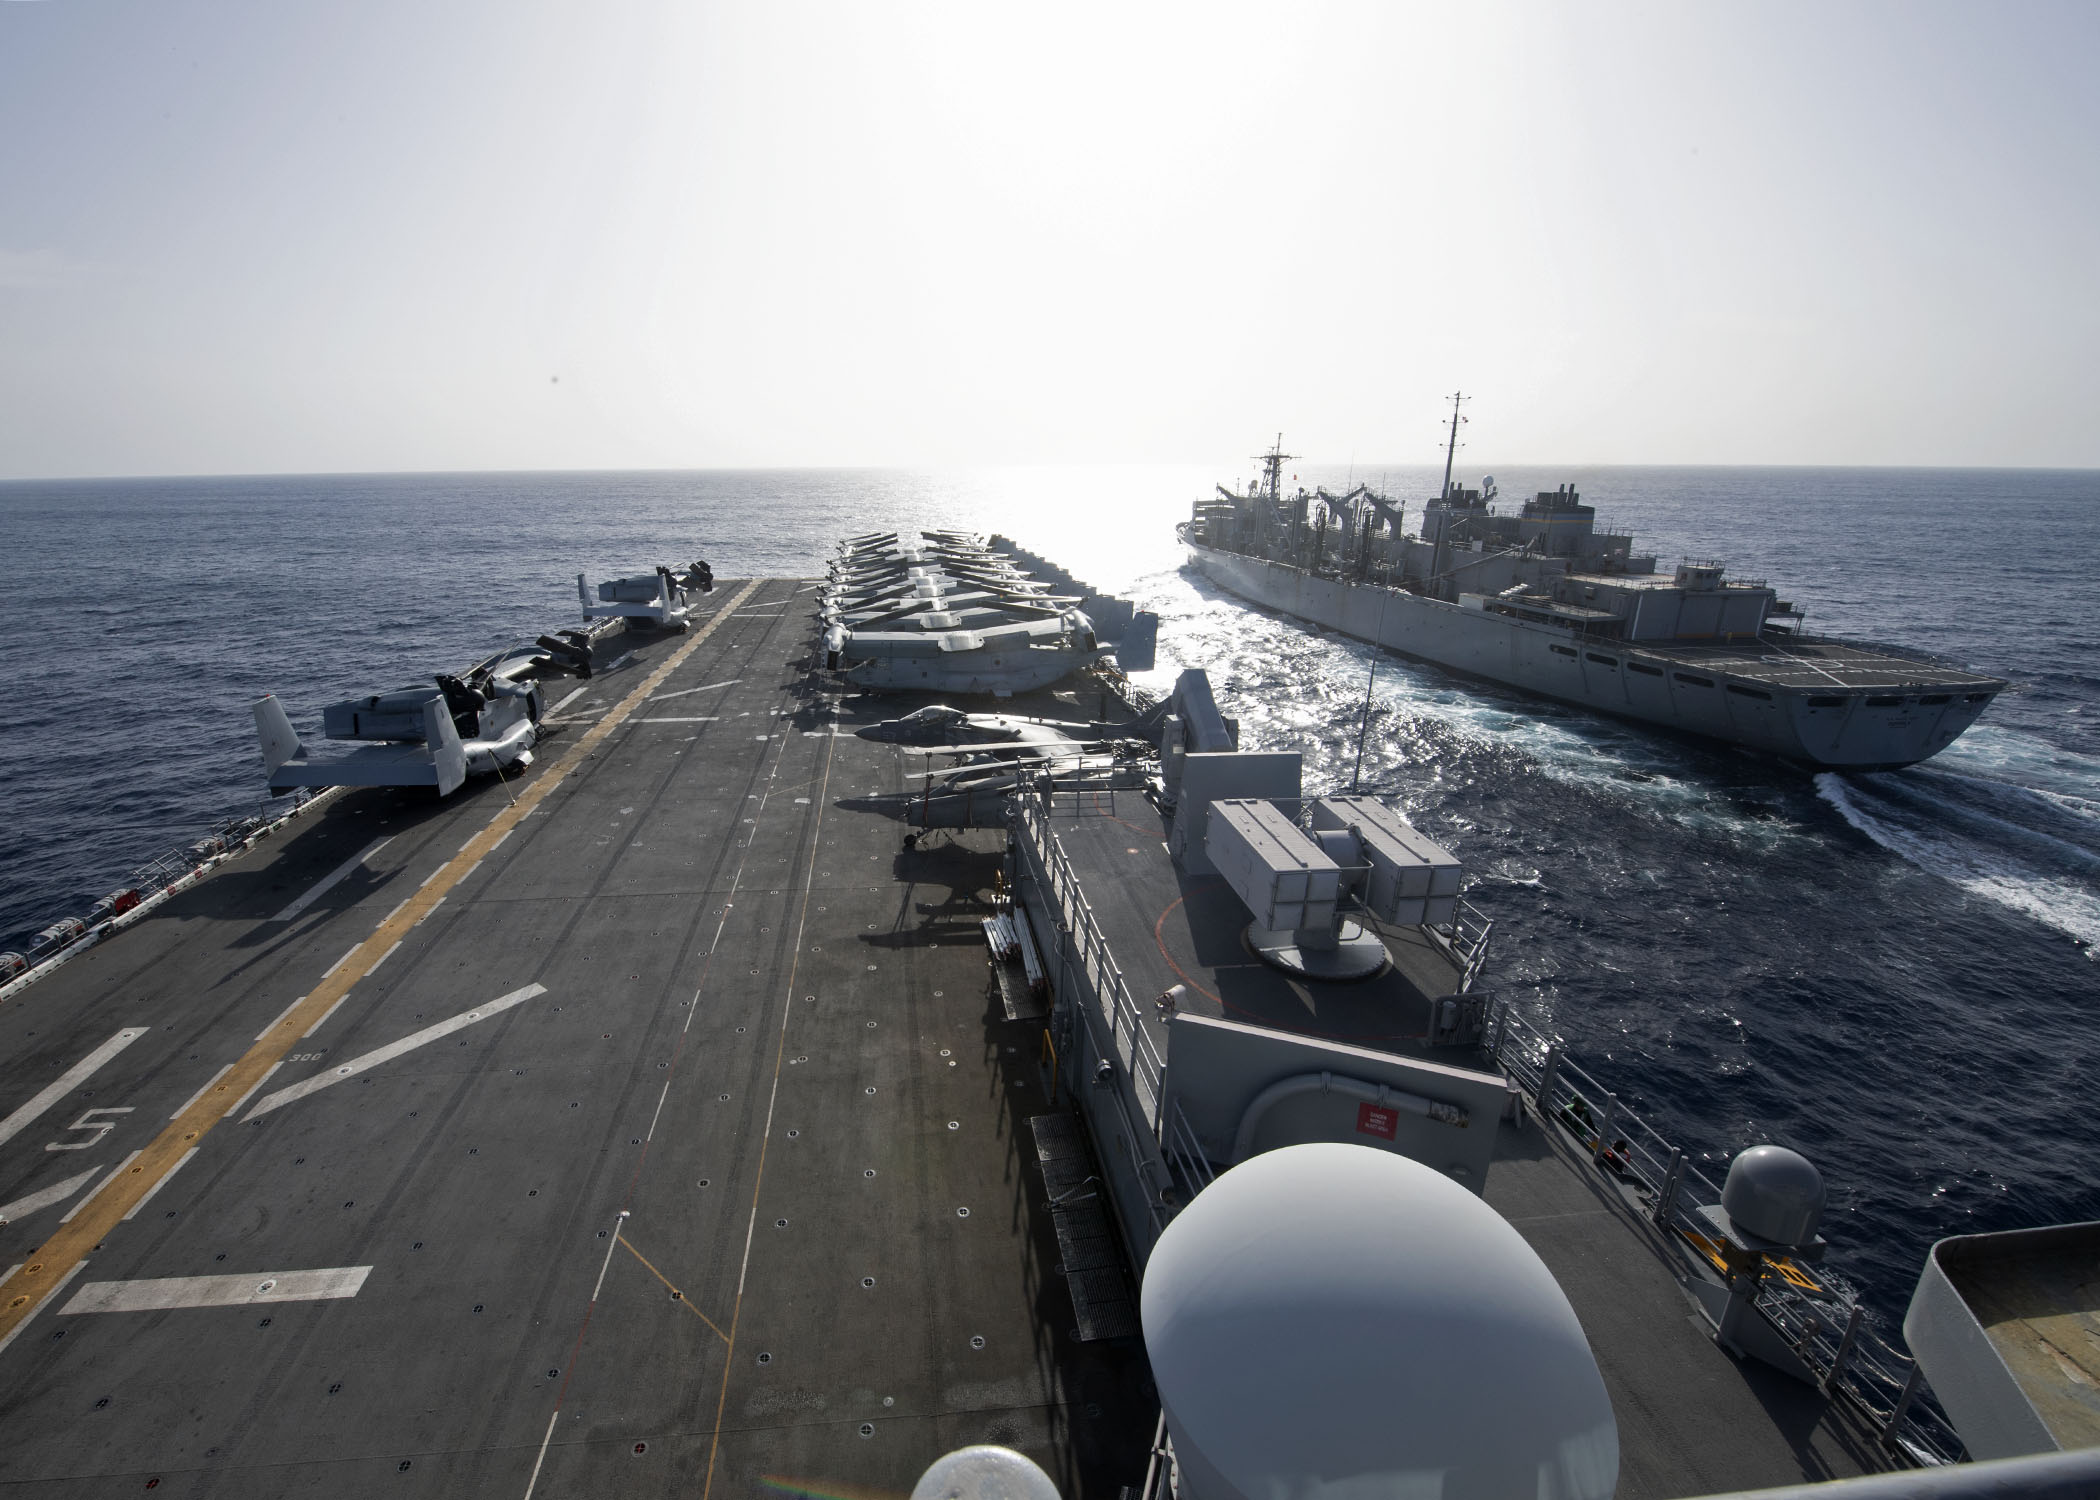 USS Iwo Jima (LHD 7), left, approaches the fast combat support ship USNS Supply (T-AOE 6) during a replenishment-at-sea, April 3, 2021.